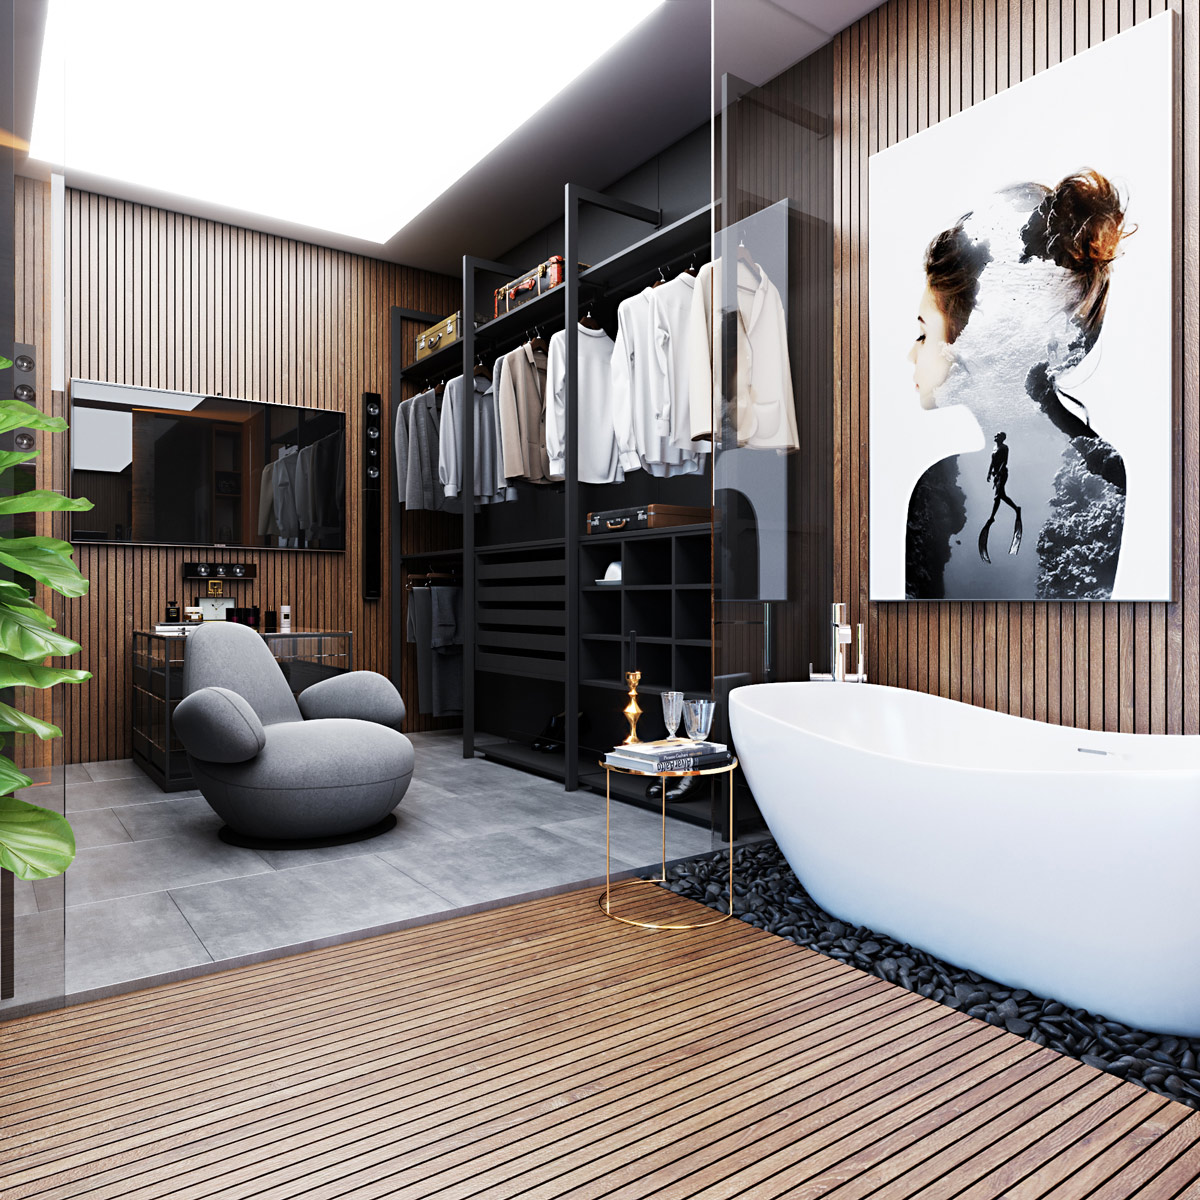 creative bathroom ideas on a budget